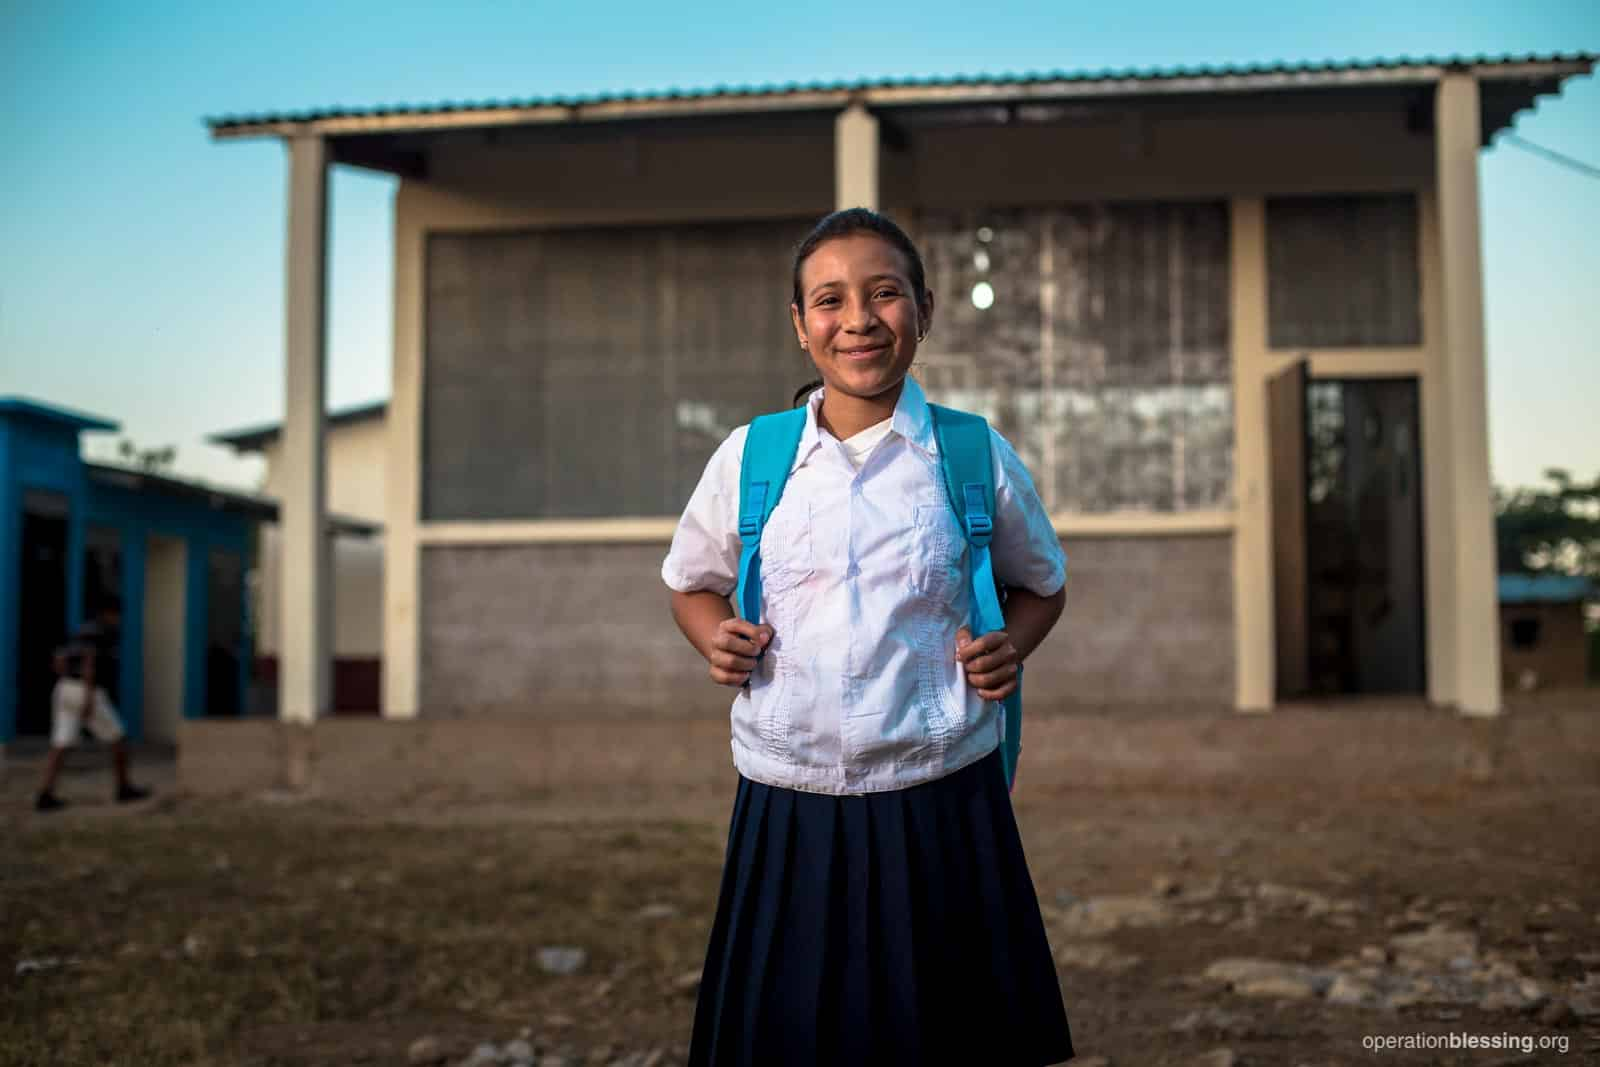 Stephany from Honduras endured dangerous conditions to receive an education until Operation Blessing International built her community a new school.